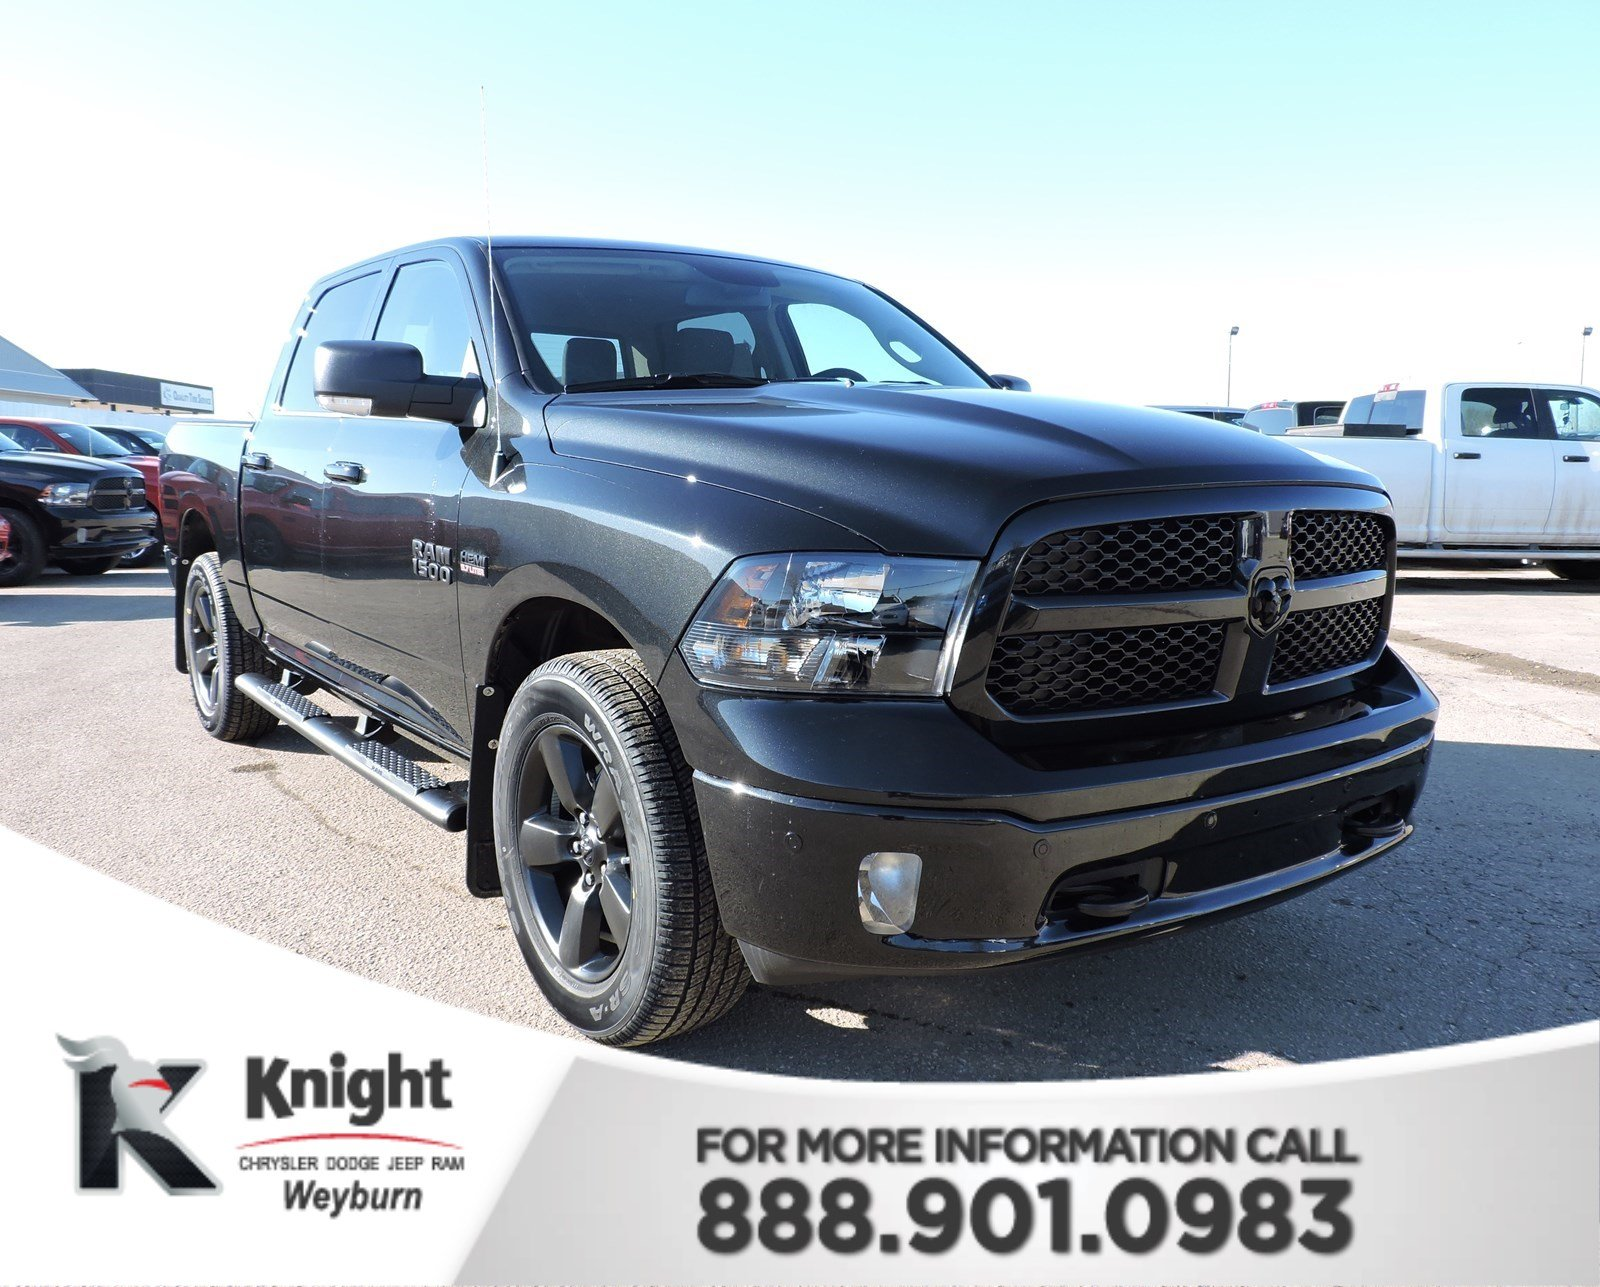 New 2018 Ram 1500 Big Horn Apple CarPlay Heated Seats Back Up Cam Front &